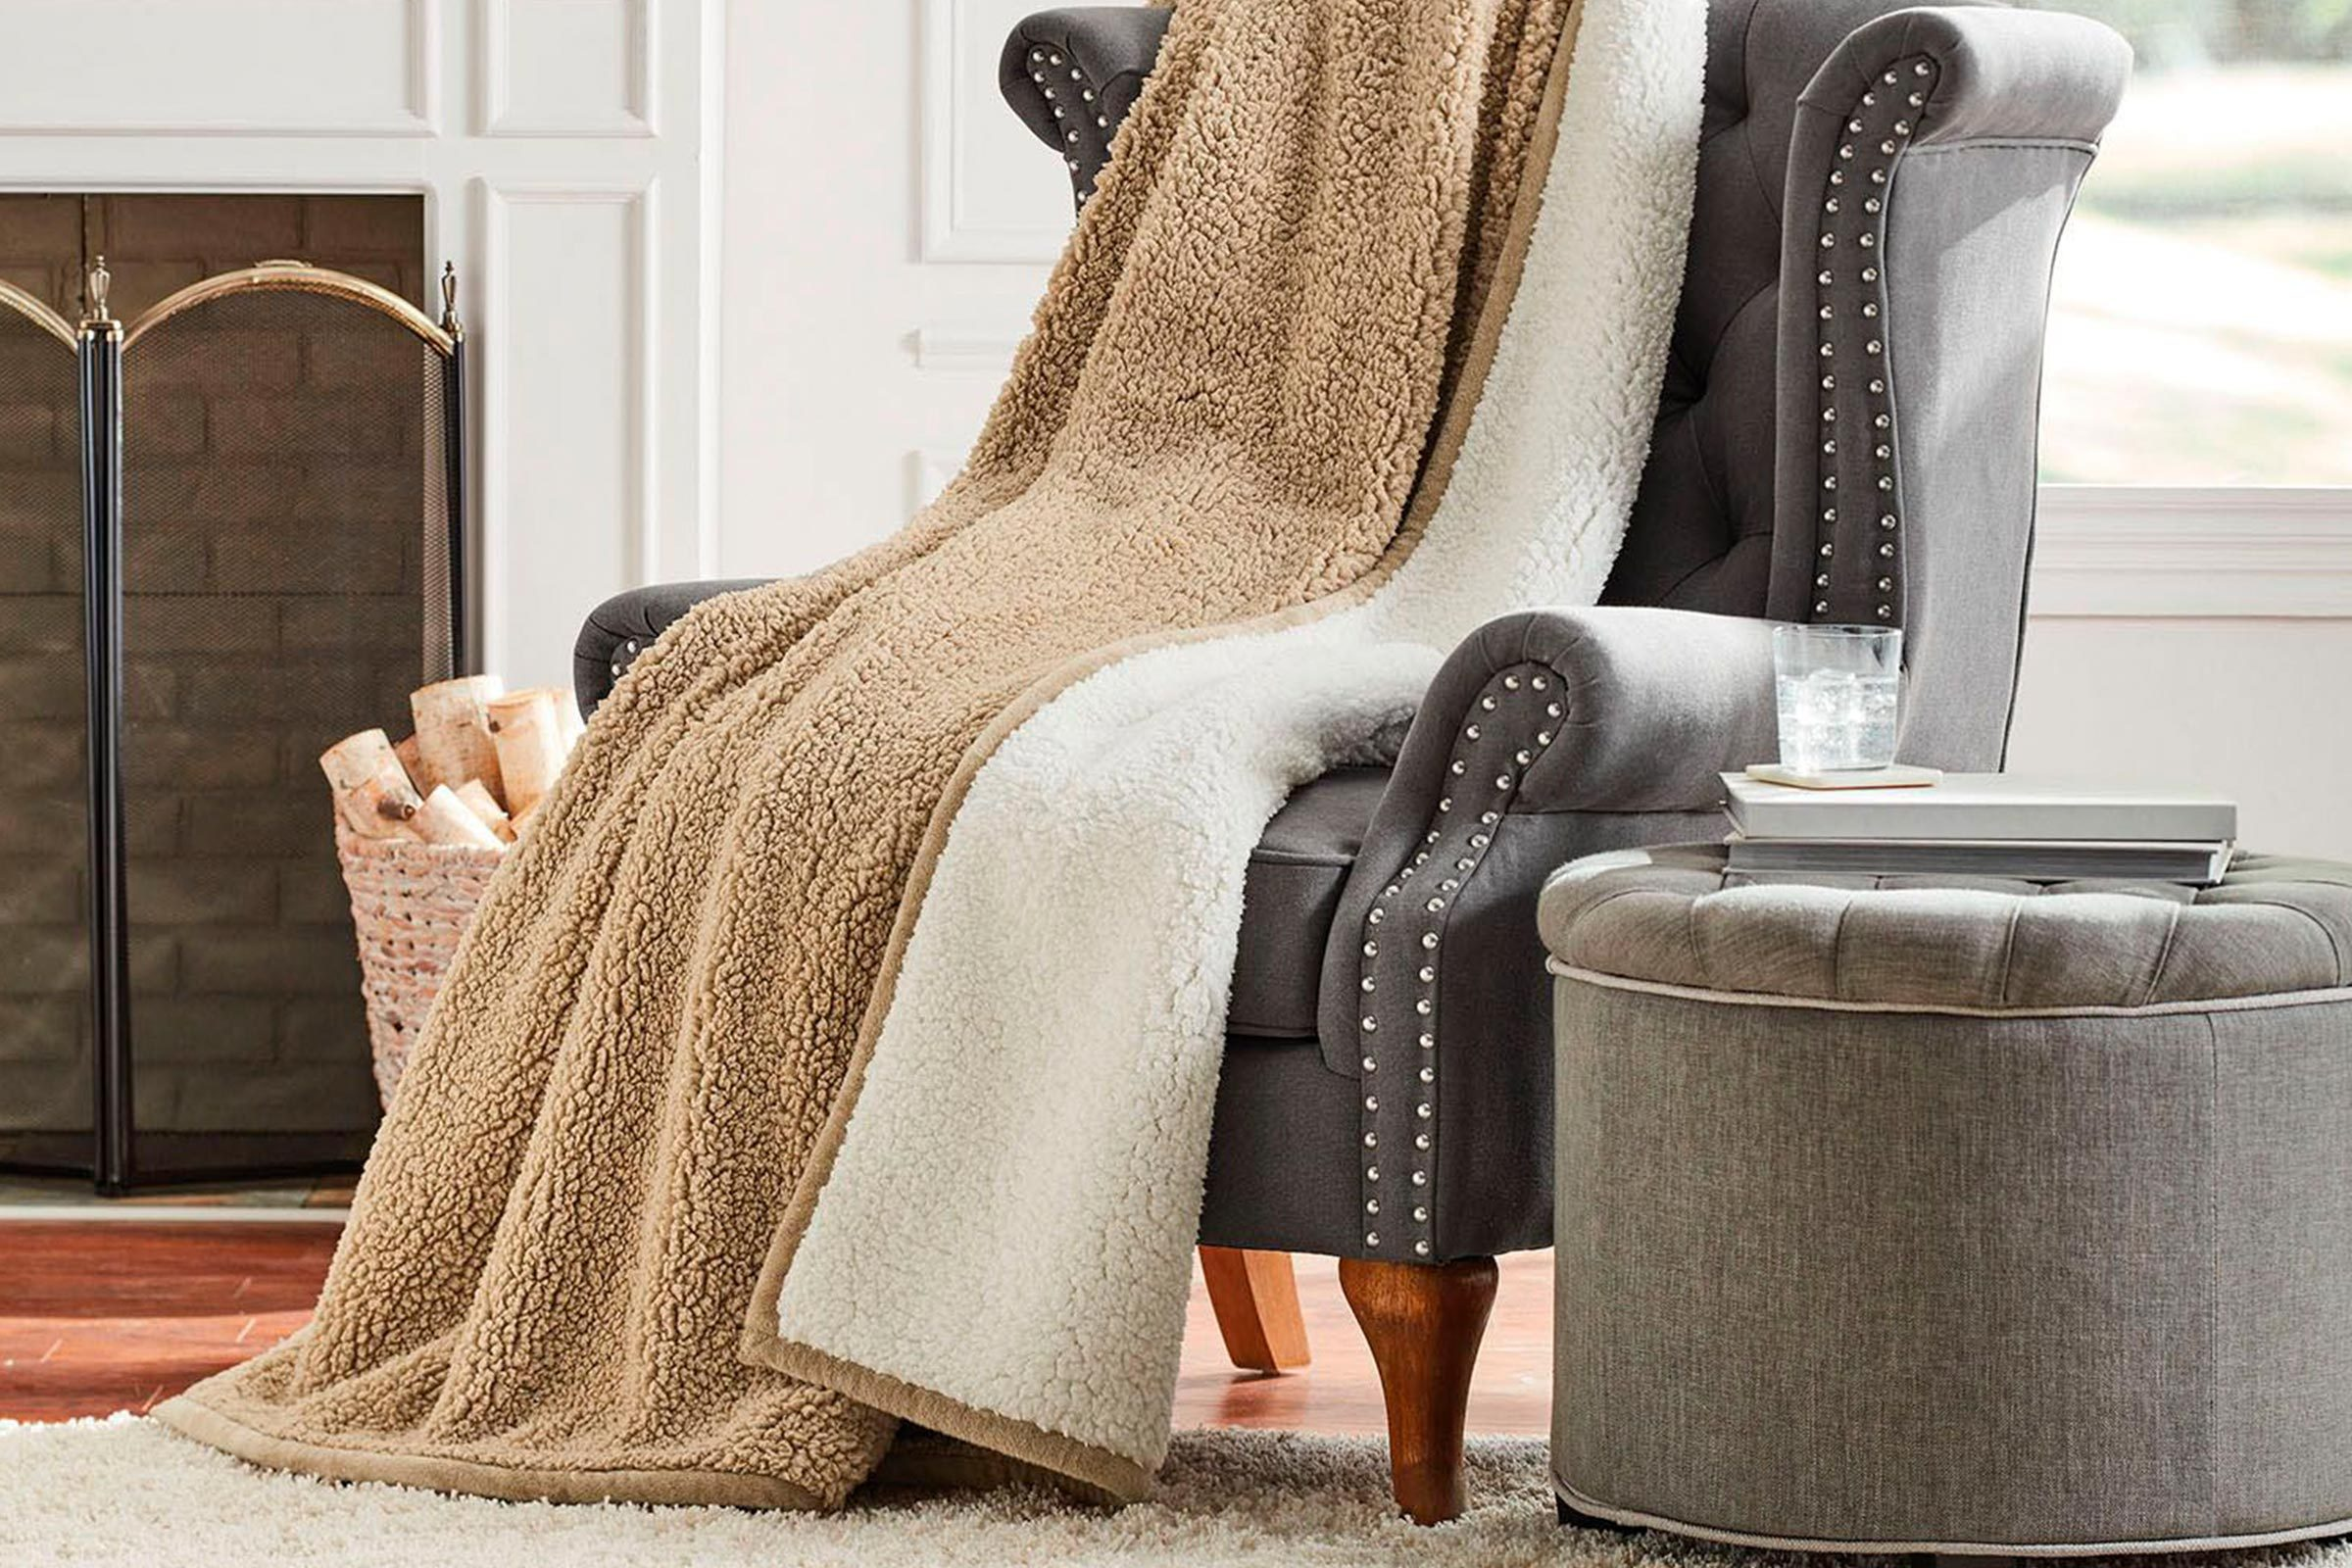 Lounge Throw Gifts Under 30 From Sam S Club For Everyone On Your List